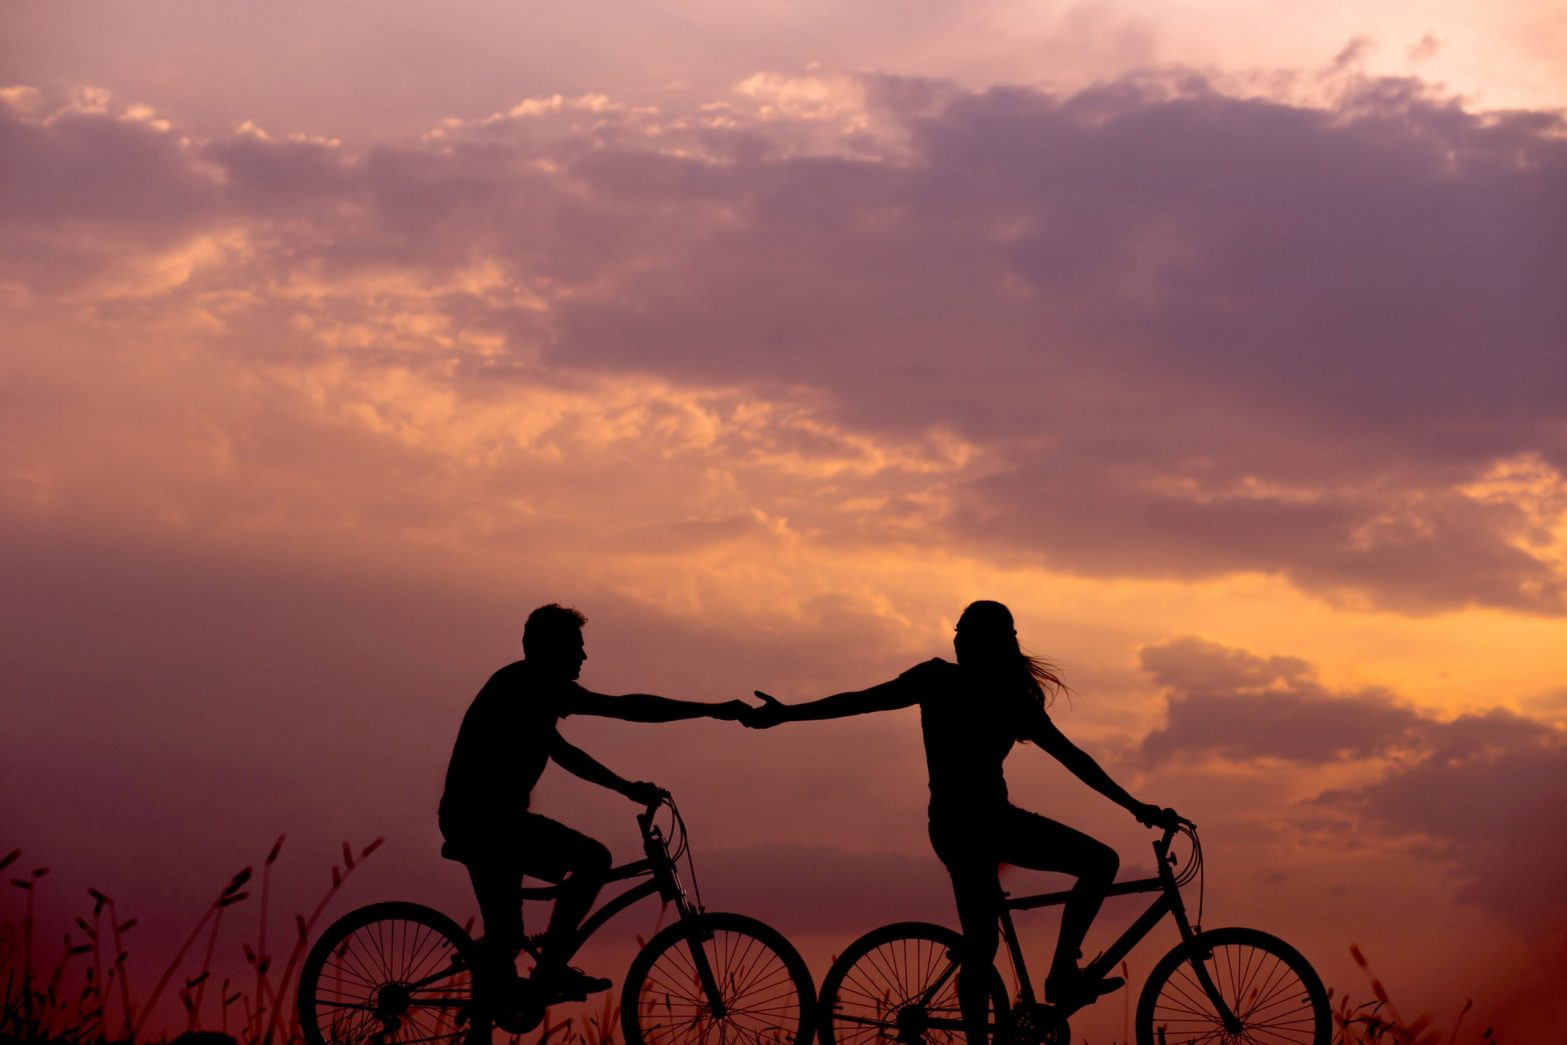 Woman on bike reaching out for hand of man on bike. Anxious Attachment.